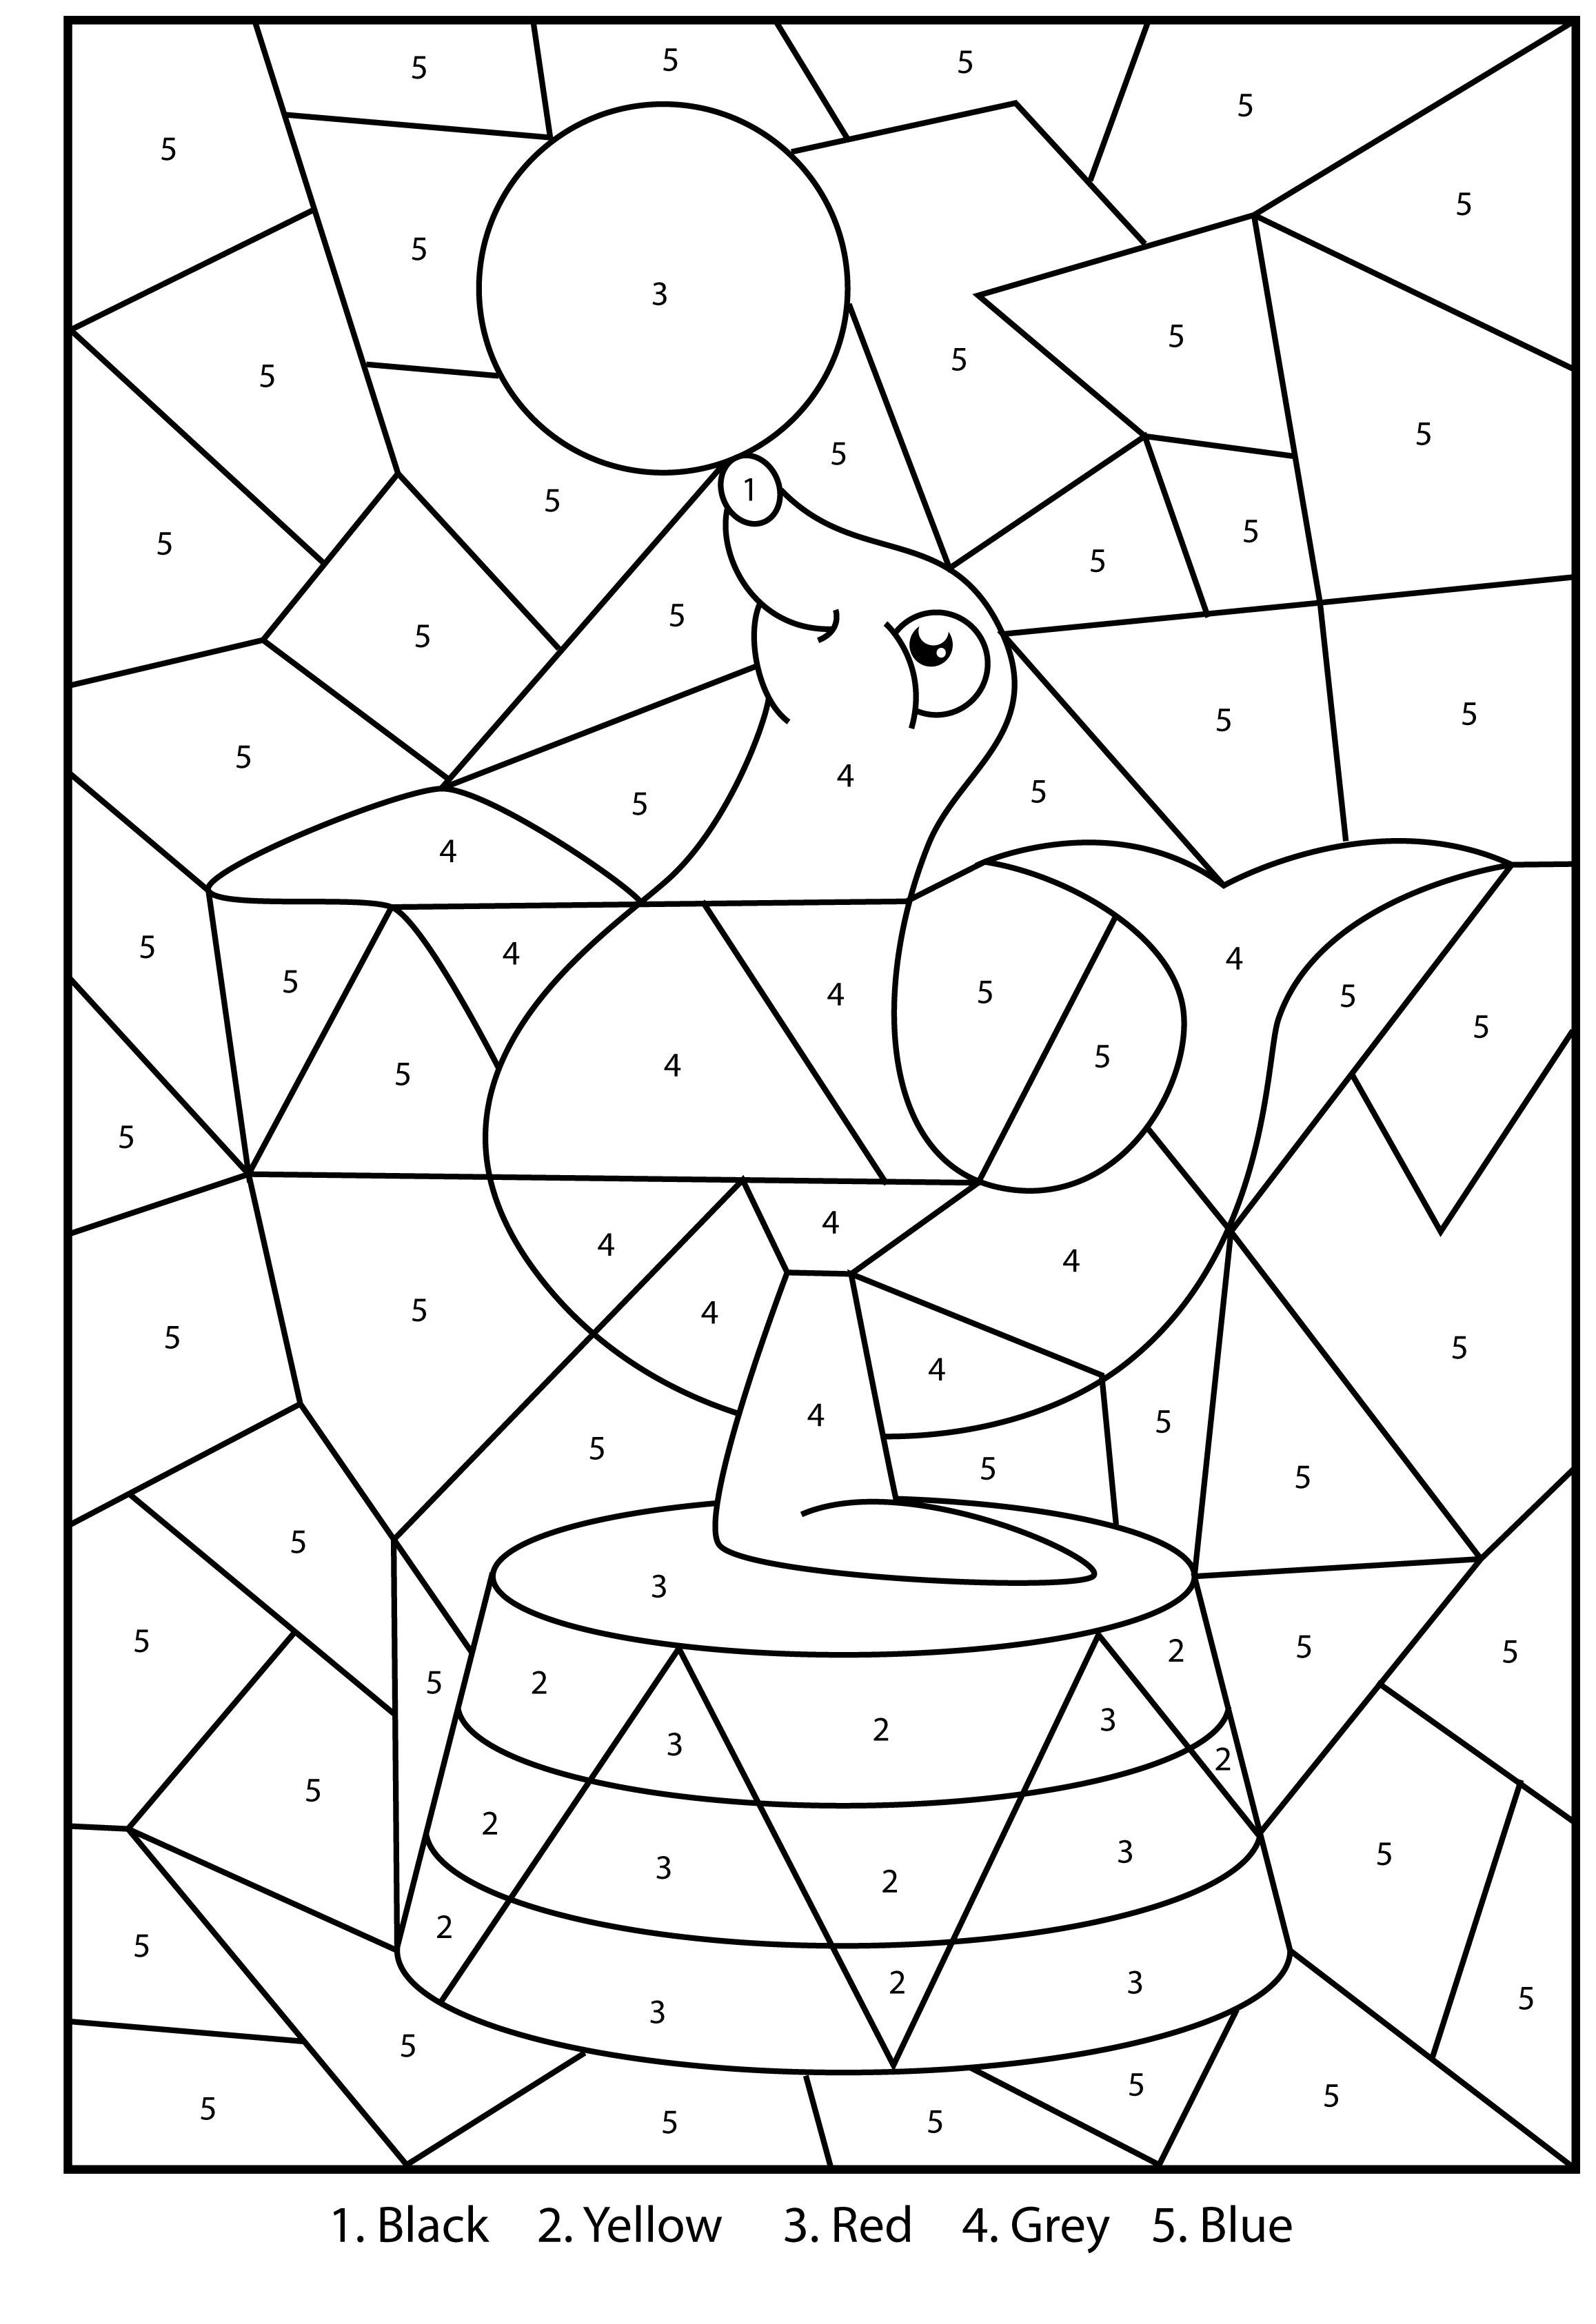 free printable silly seal colour by numbers activity for kids - Free Printable Pictures To Colour